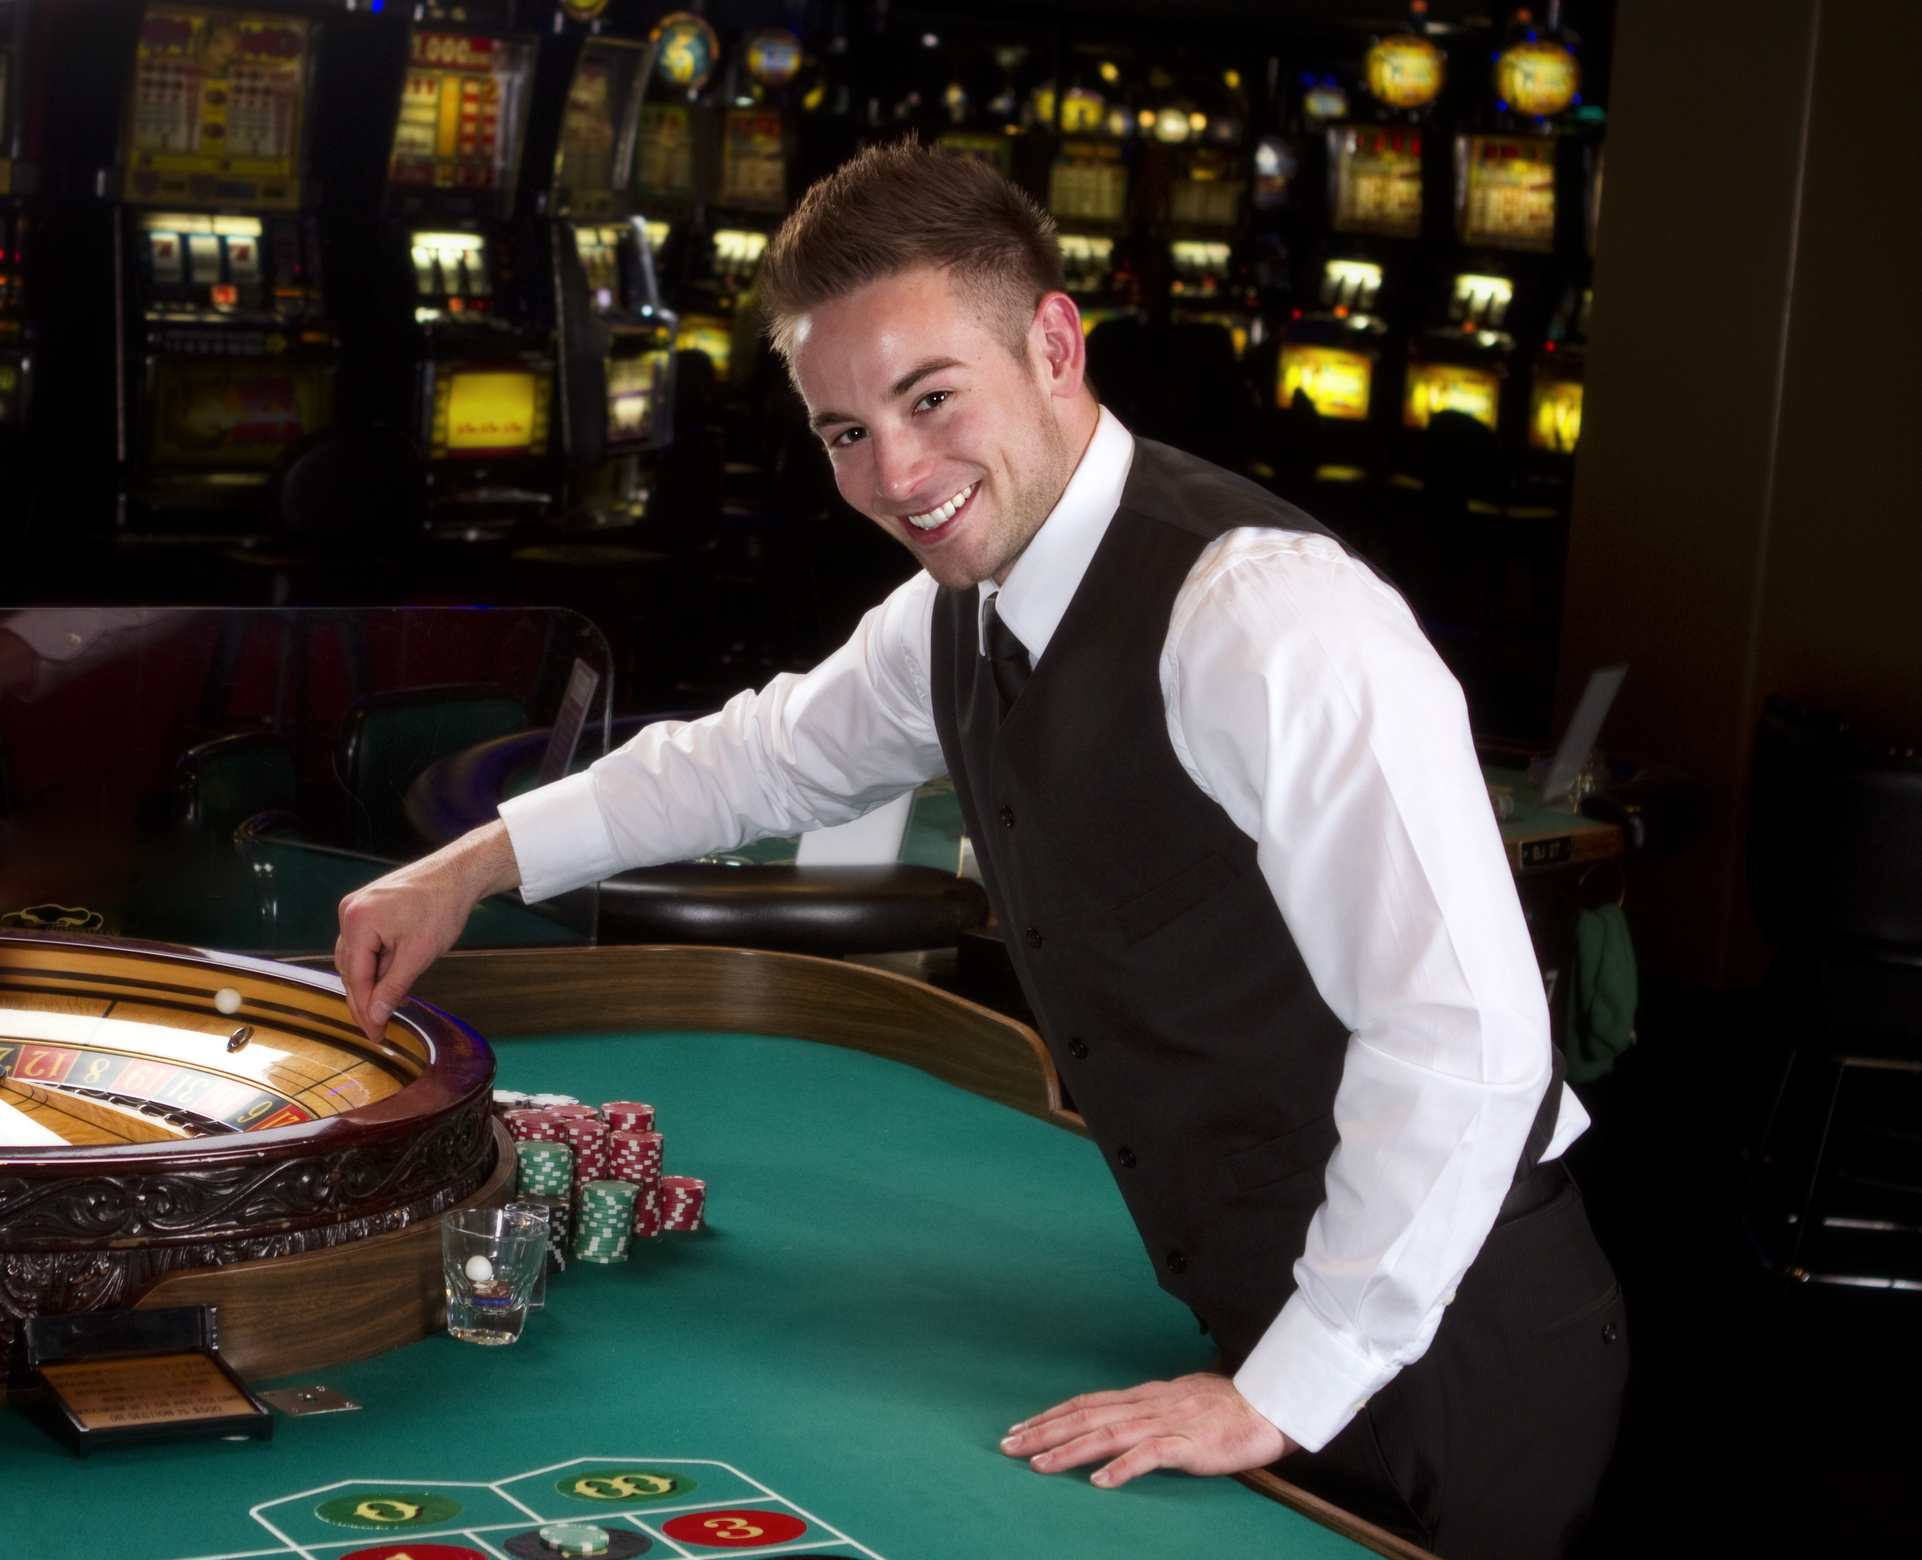 The best way to play casino games on the Internet